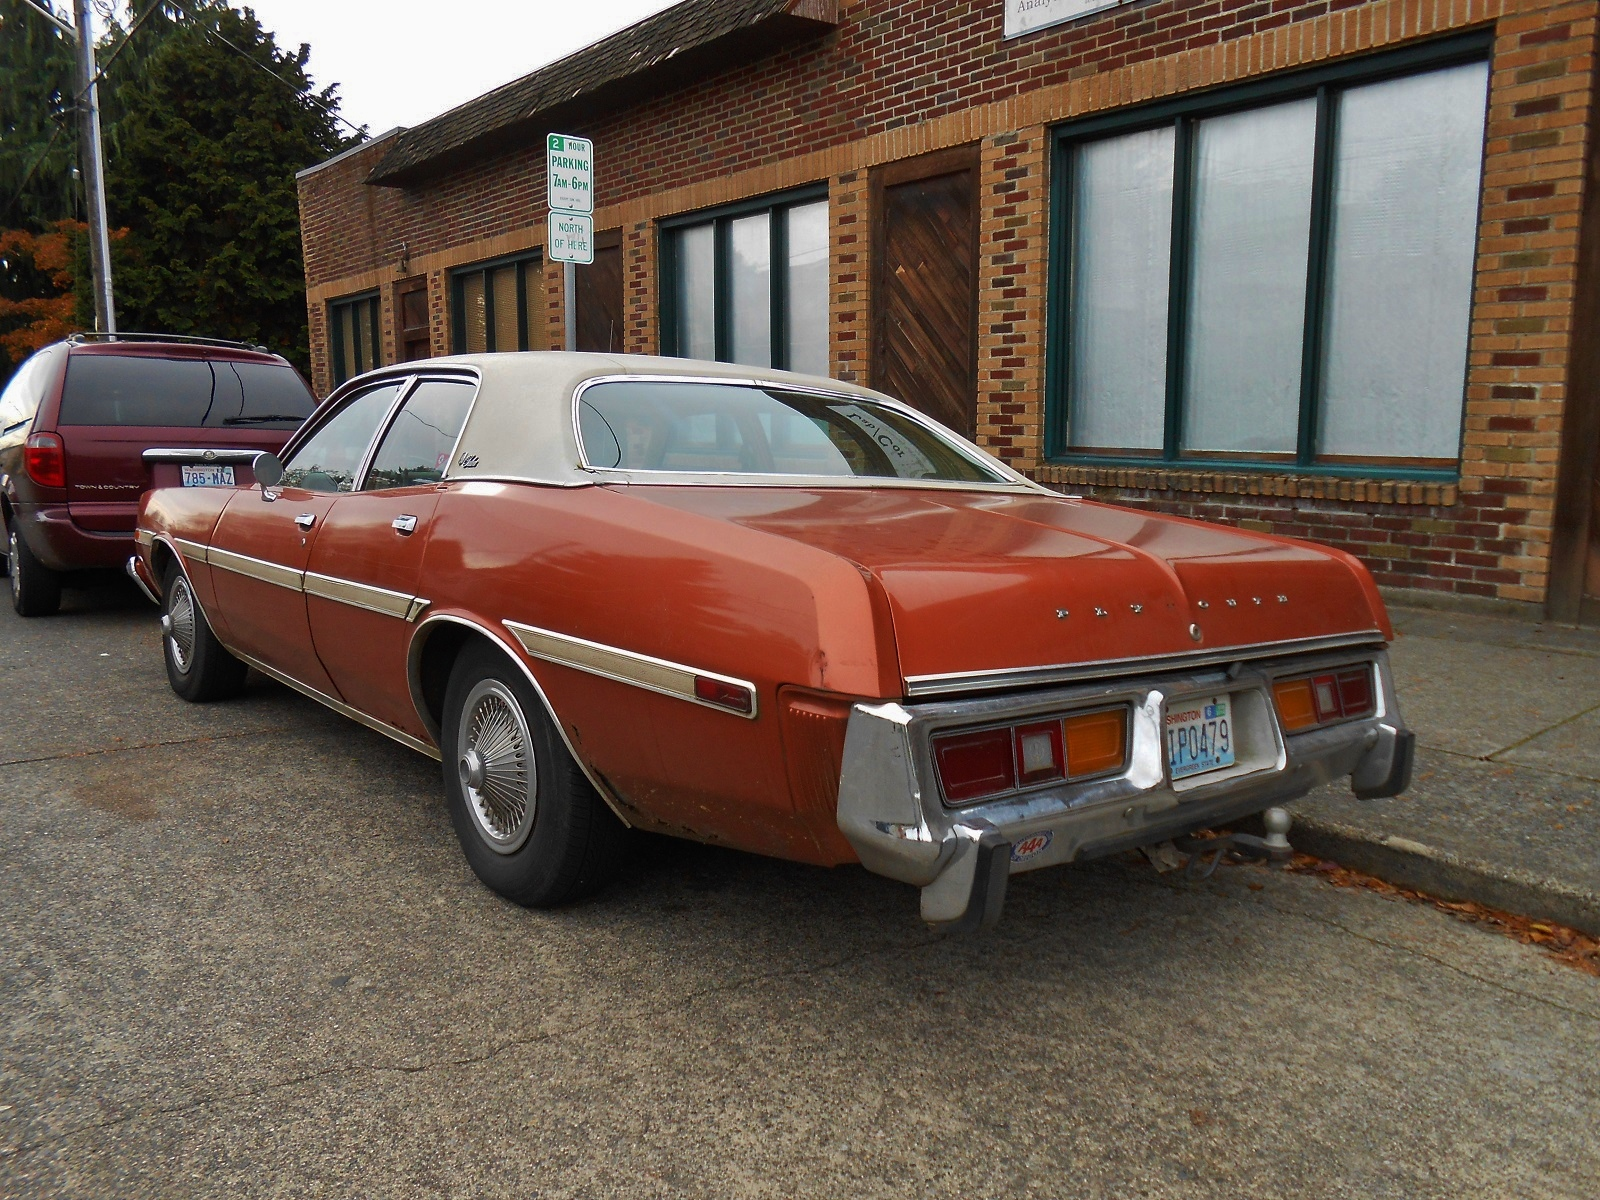 1976 Plymouth Fury Salon Of 1977 Plymouth Fury Salon Pictures To Pin On Pinterest